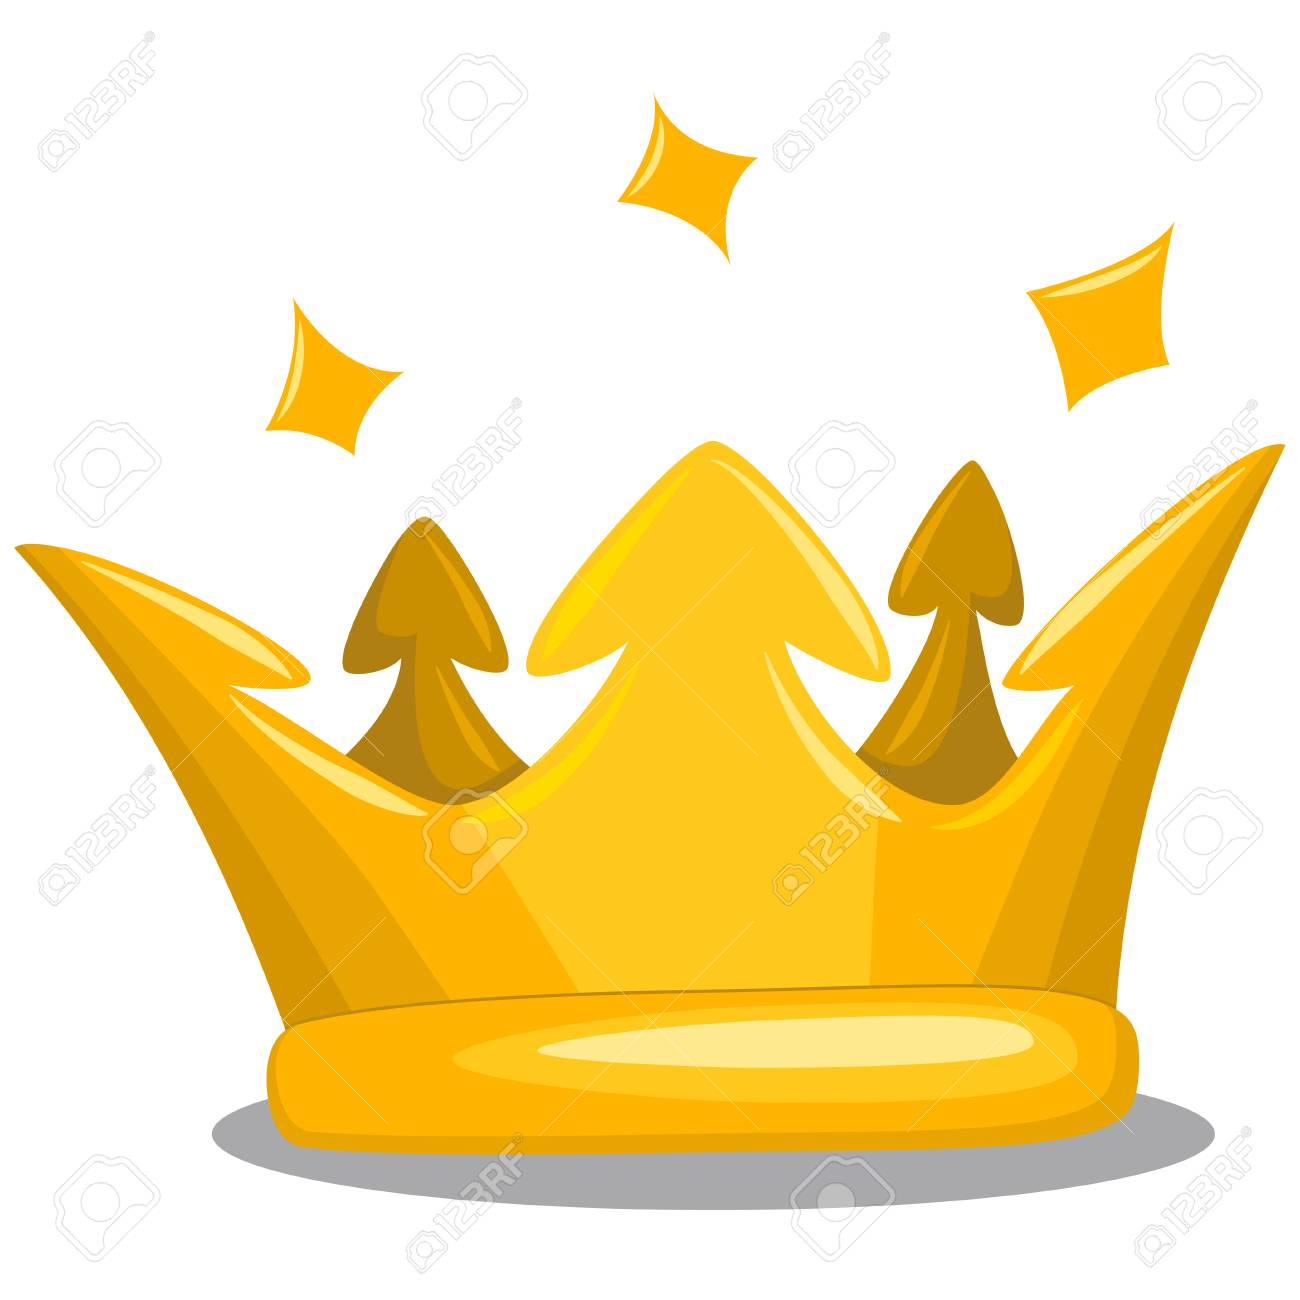 Gold King Crown Cartoon Vector Icon Of Royal Attribute Isolated